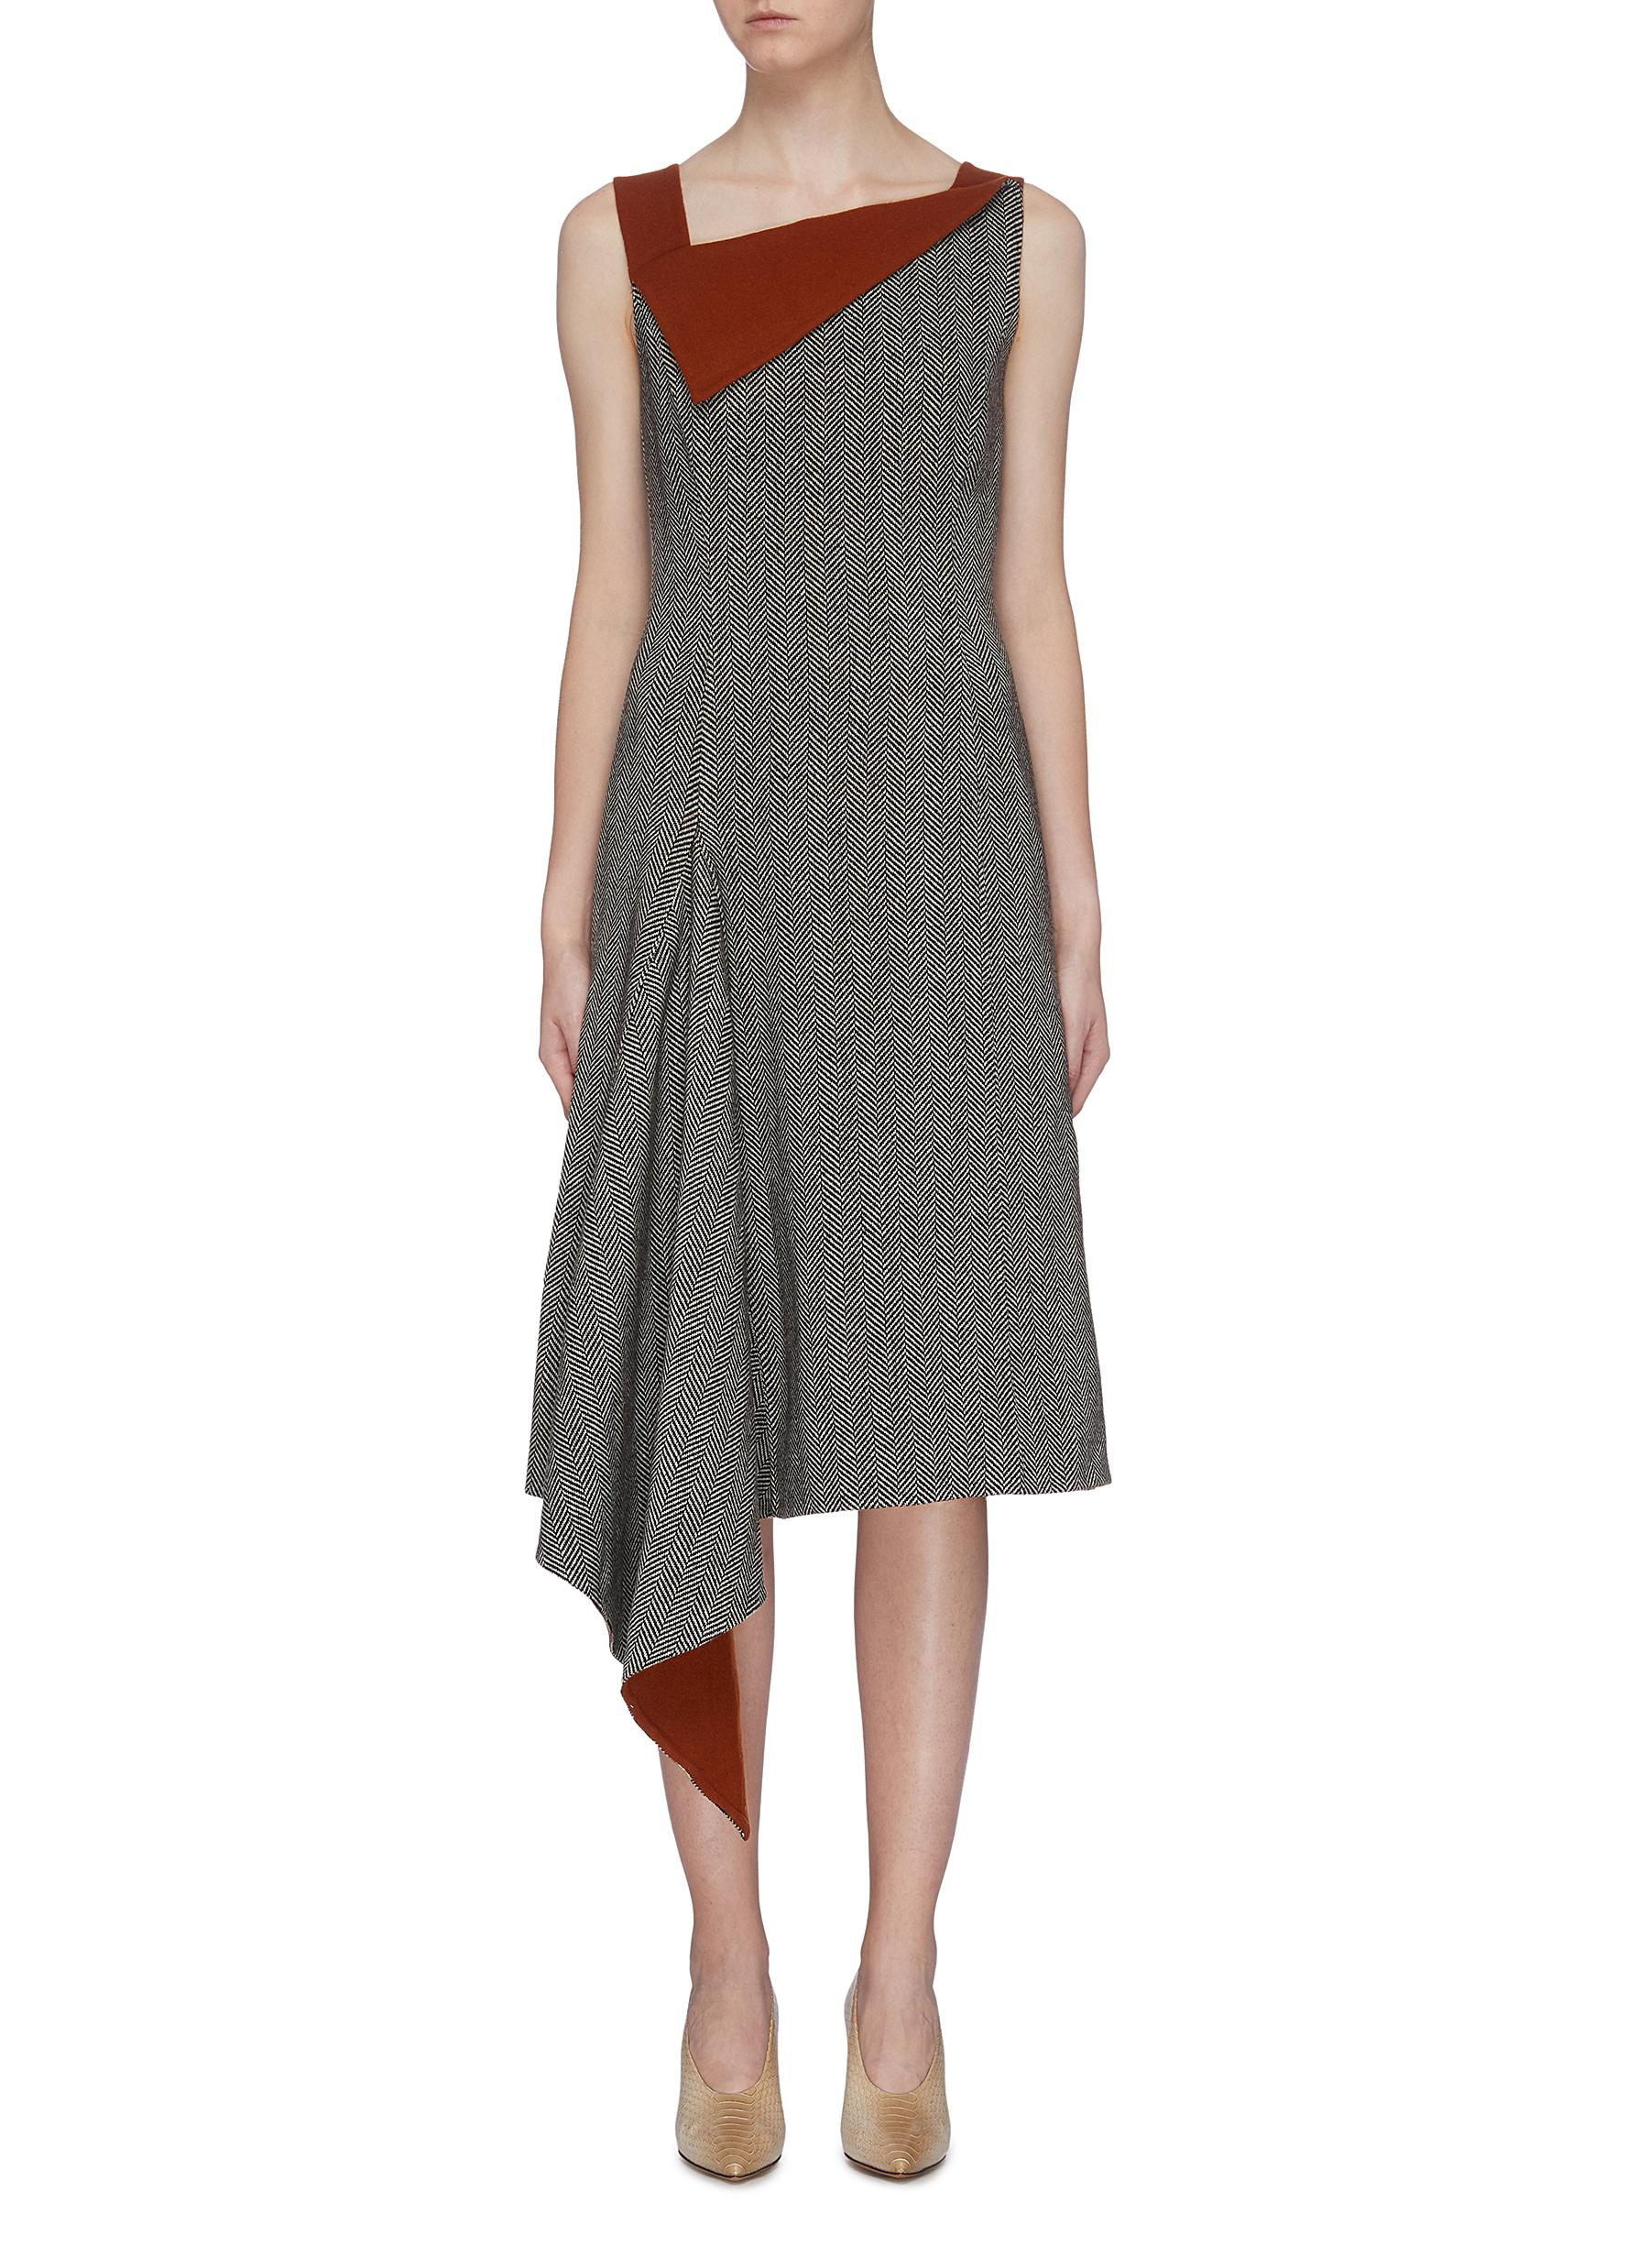 Folded collar drape panel hem herringbone dress by Oscar De La Renta